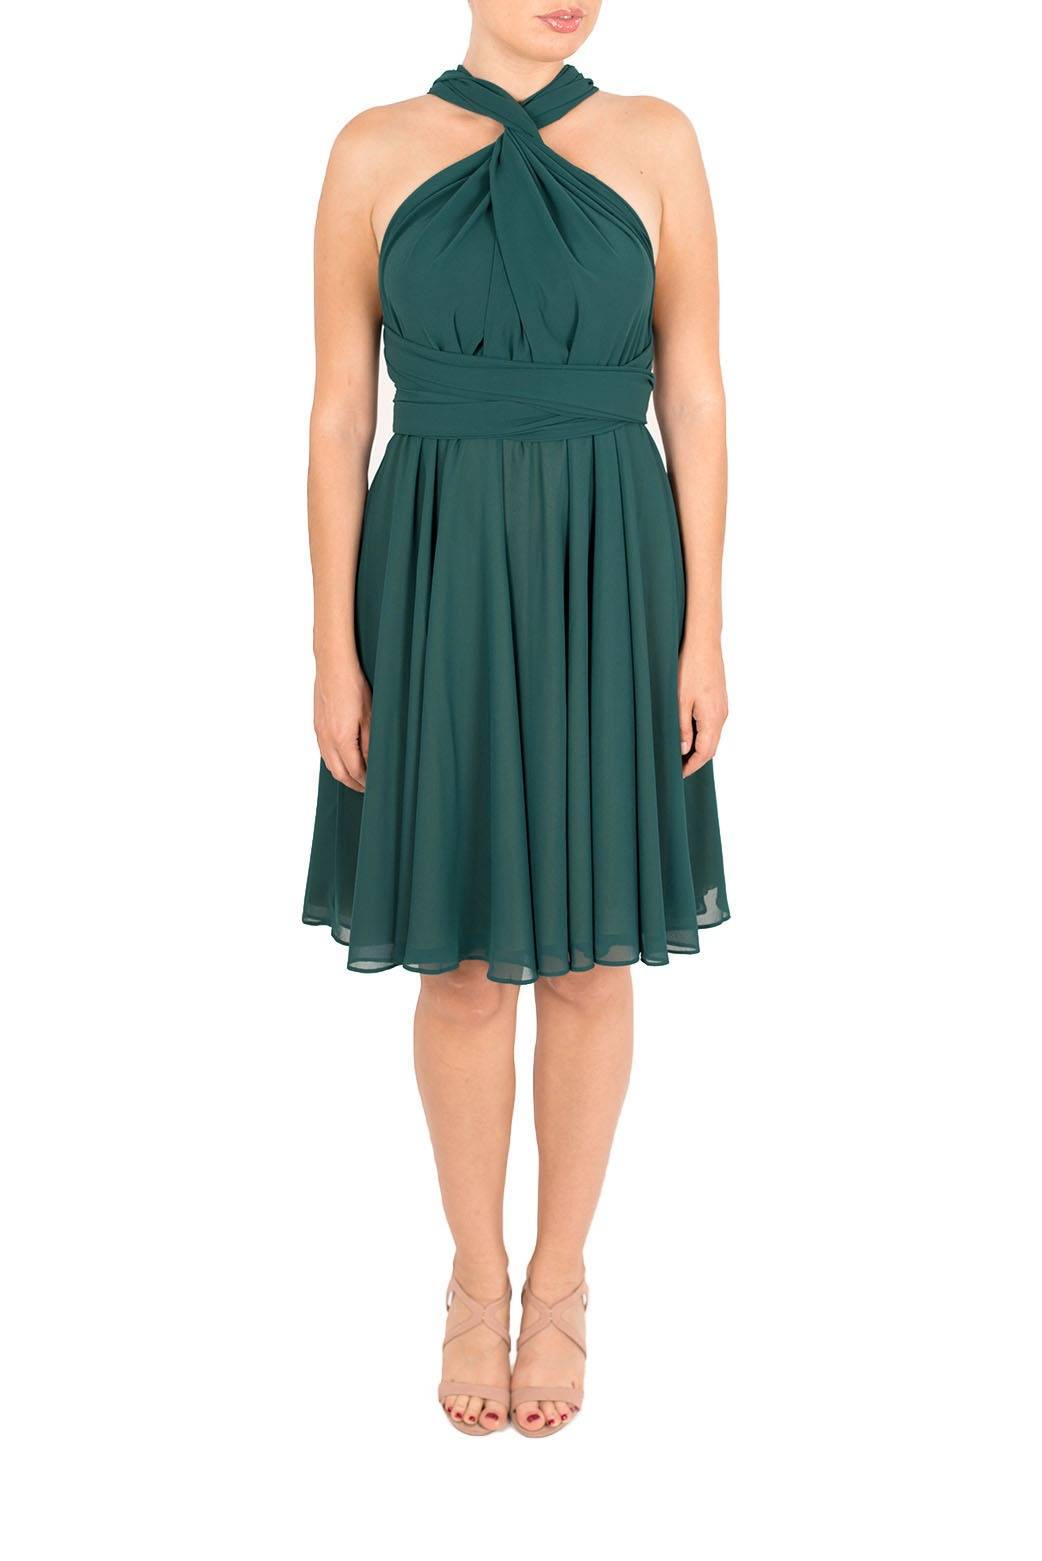 single men over 50 in green forest Over time, sammic's  quality and innovation built over 50 yearsthe  knee pencil skirts and office dresses to men's tapered single-pleat trousers and buttoned .